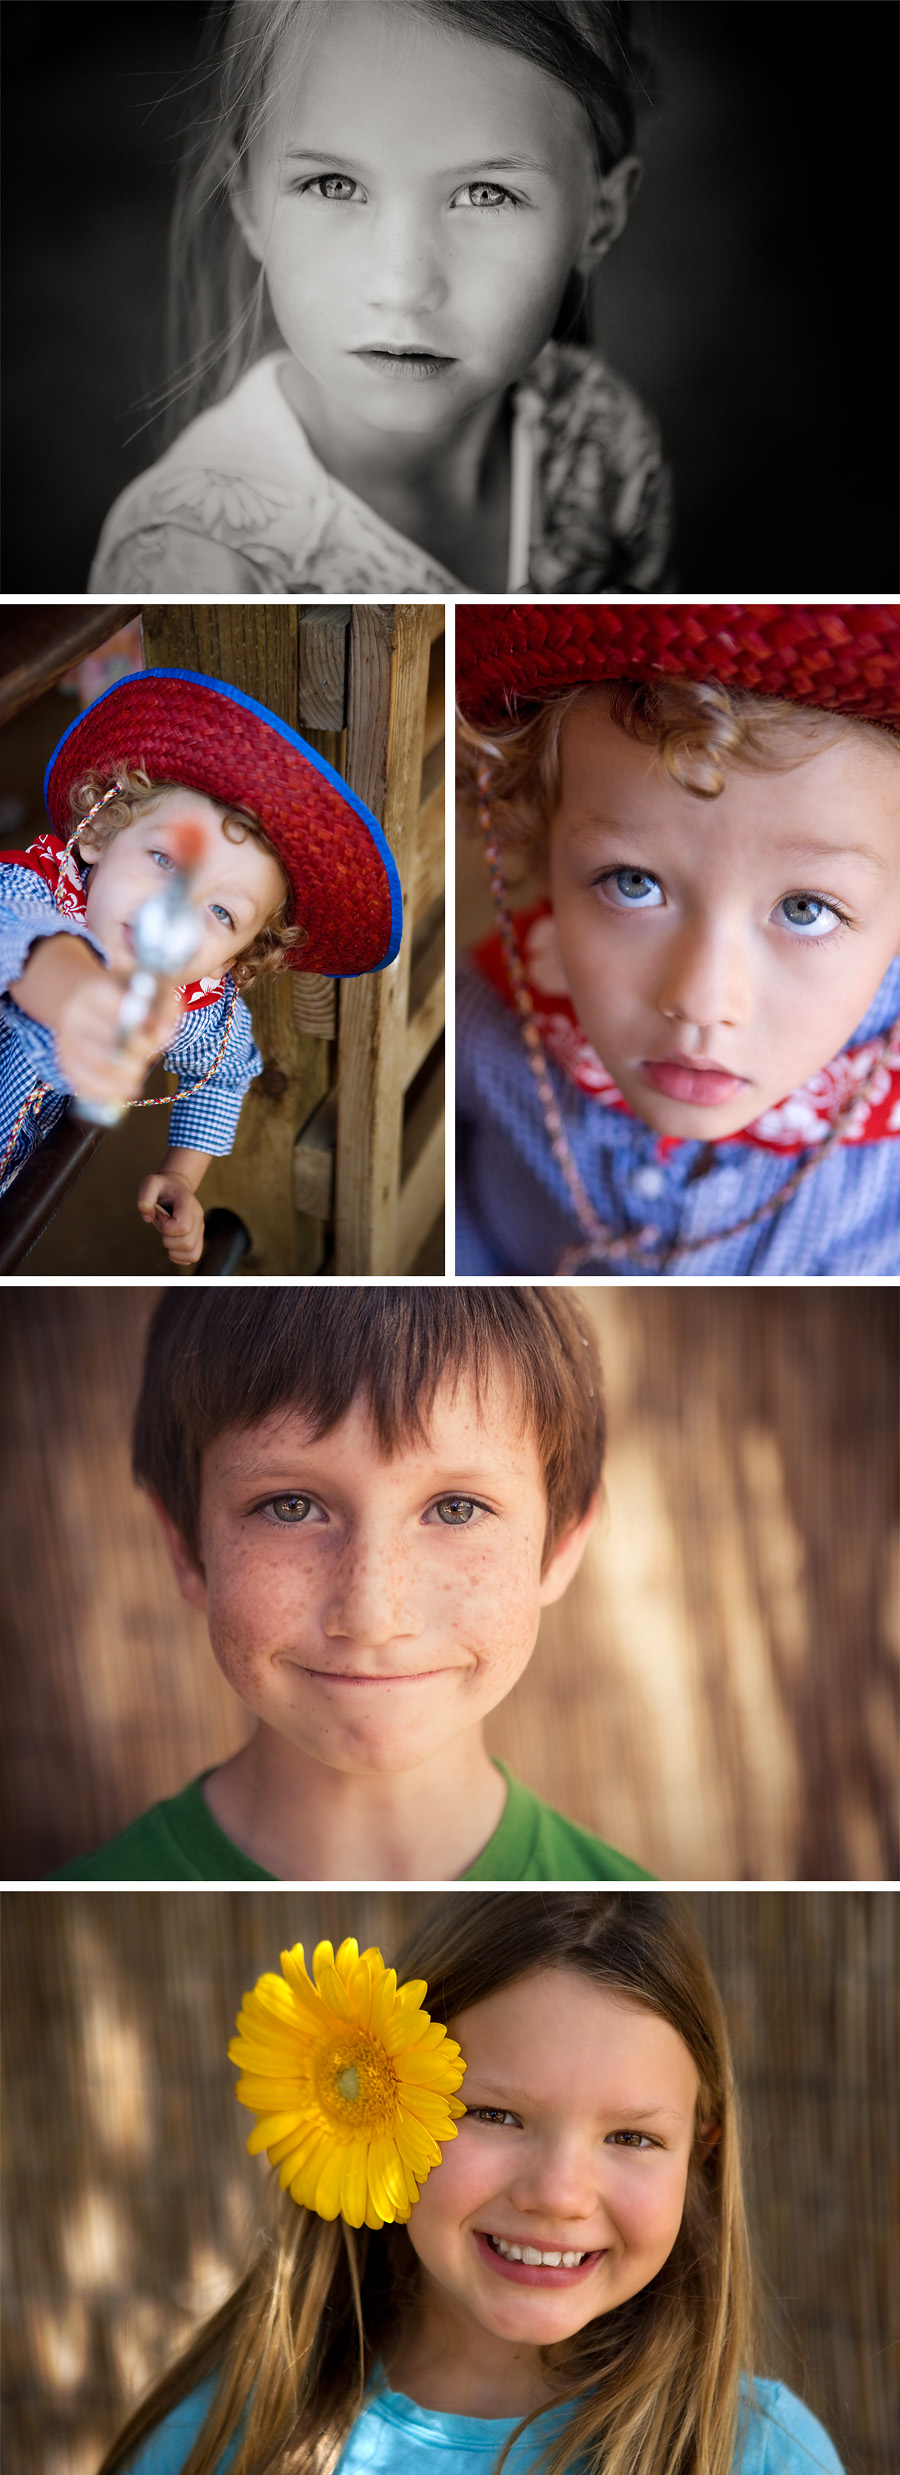 kids' event photography, taken in Laguna Beach, CA by Gillian Crane Photography